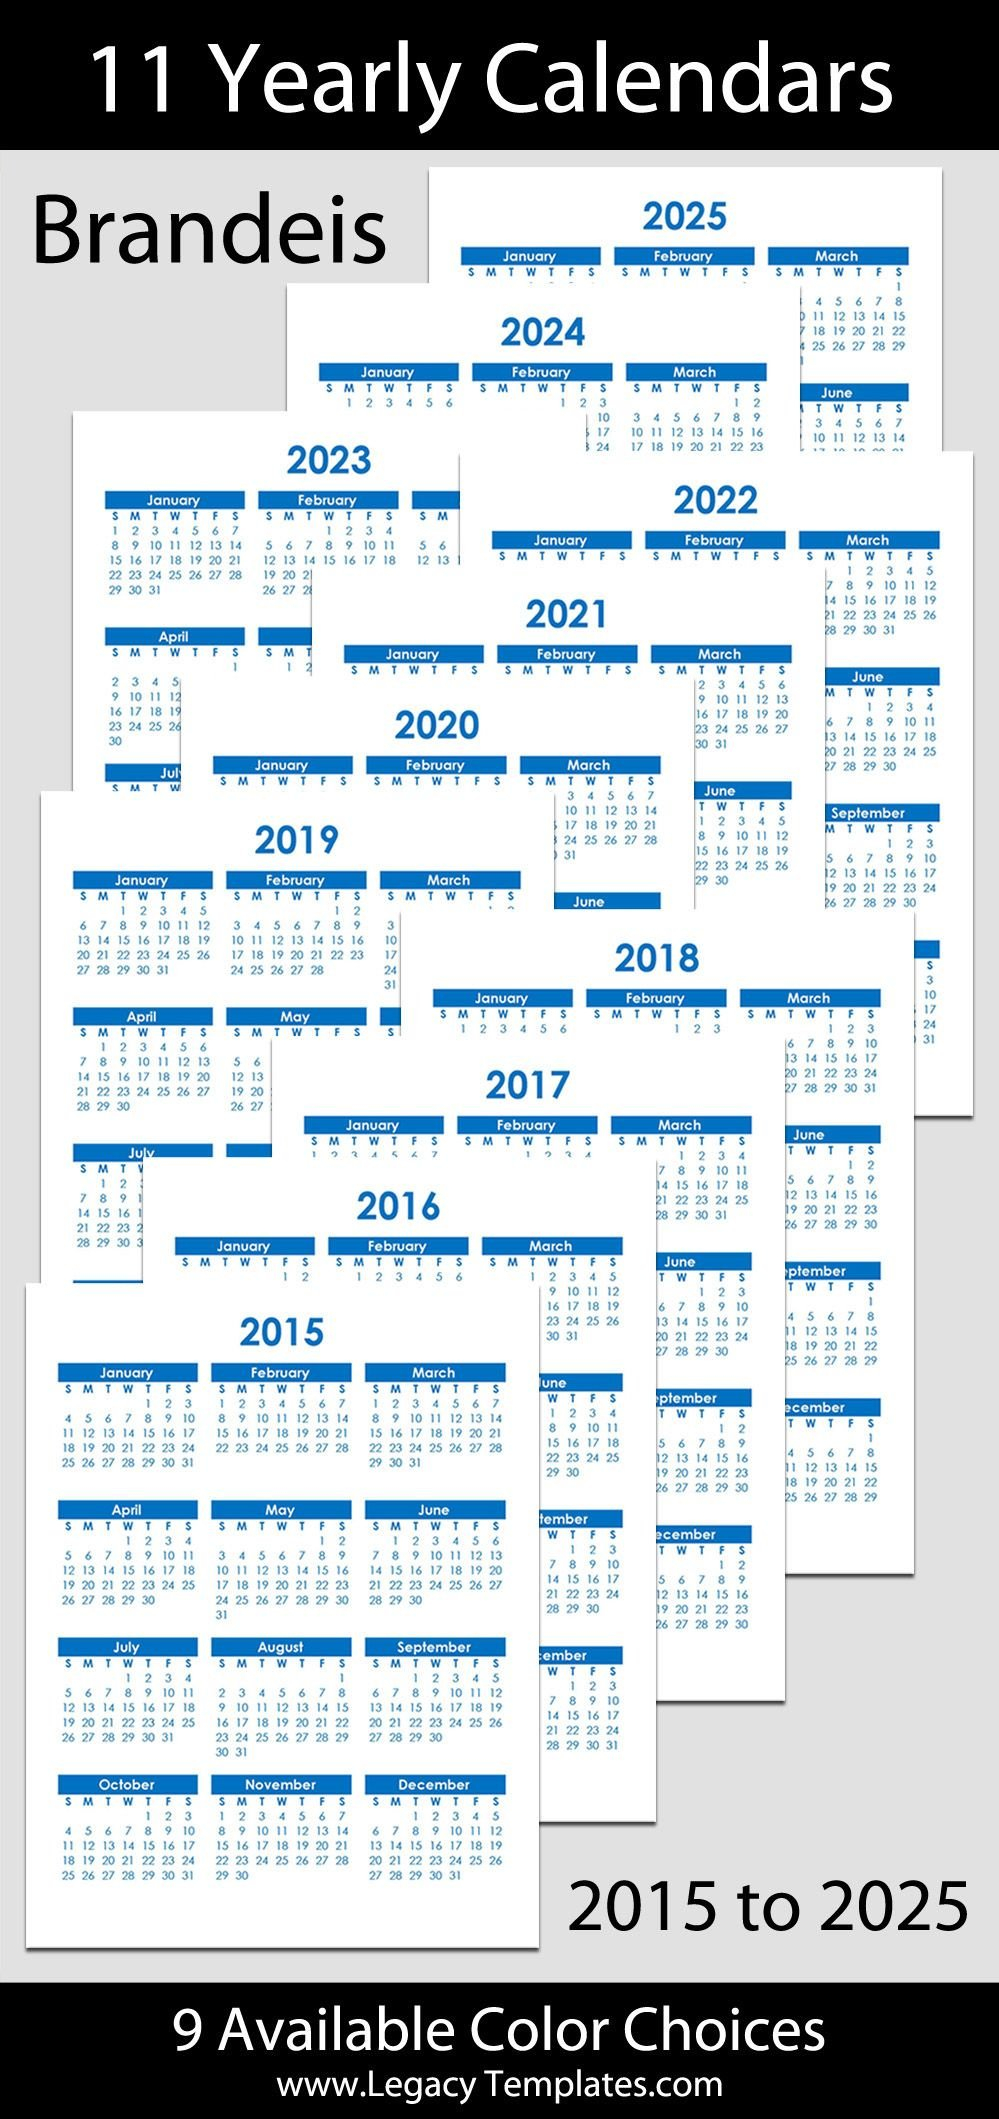 2015 To 2025 Printable Yearly Calendars - Letter Size – 8 8 And 1/2 By 11 Monthly Printabe Calendar